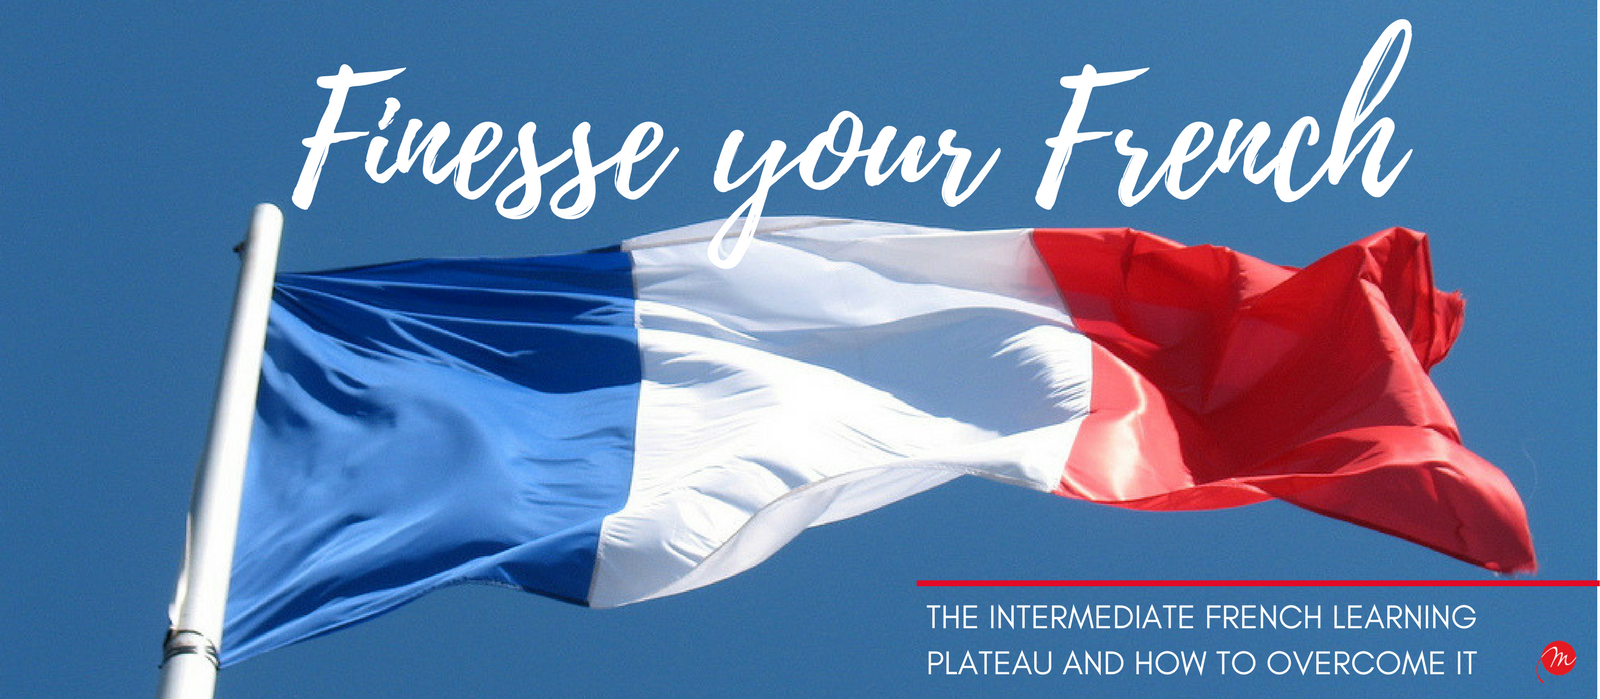 MyFrenchLife™ – MyFrenchLife.org - French learning plateau - finesse your French - intermediate learning plateau - learn French - language plateau - Flag